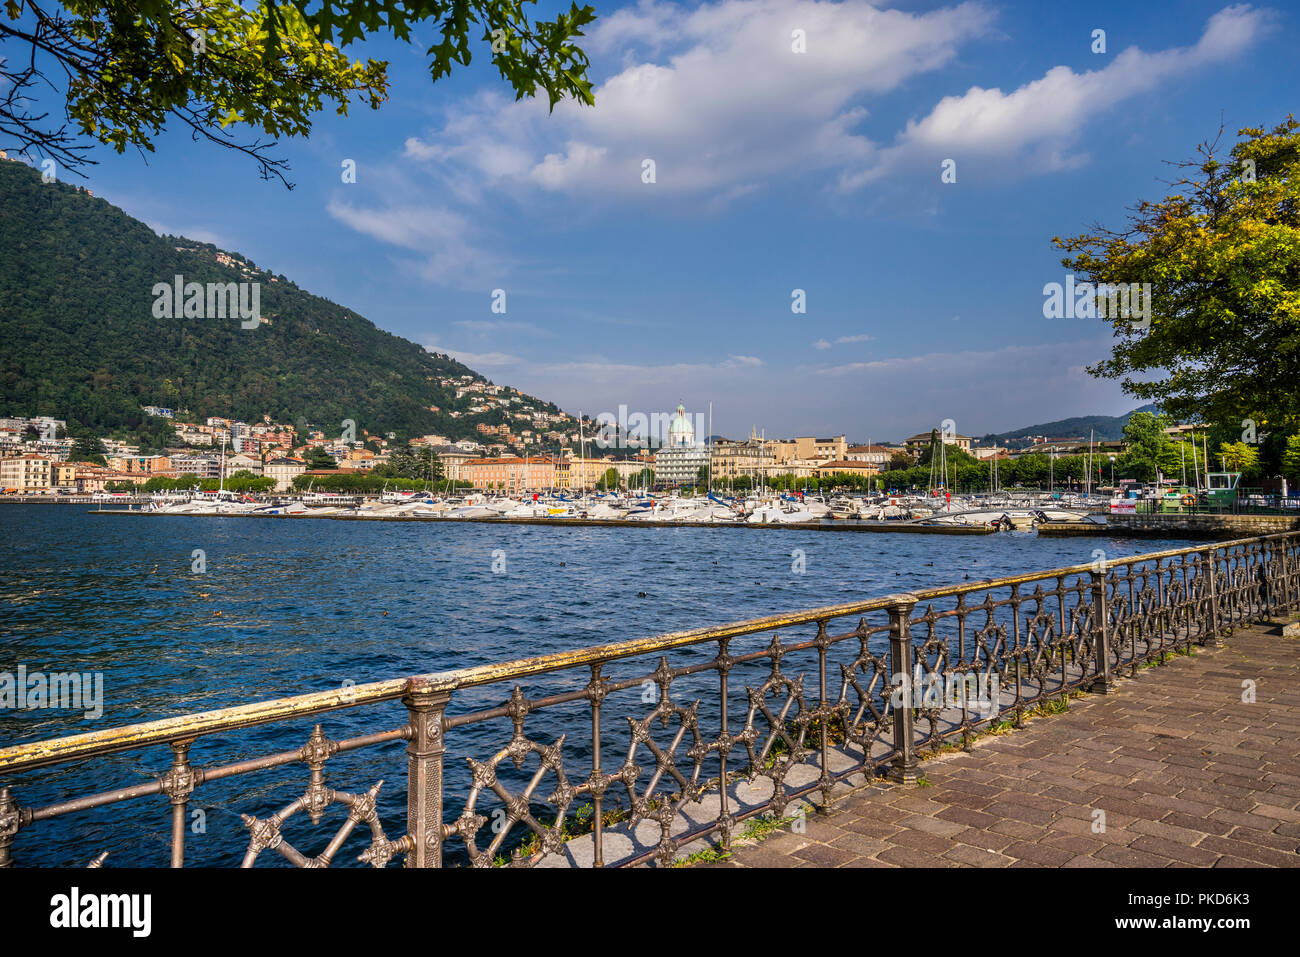 Lake Come lakefront promenade with view of the city of Como, Lombardy, Italy - Stock Image